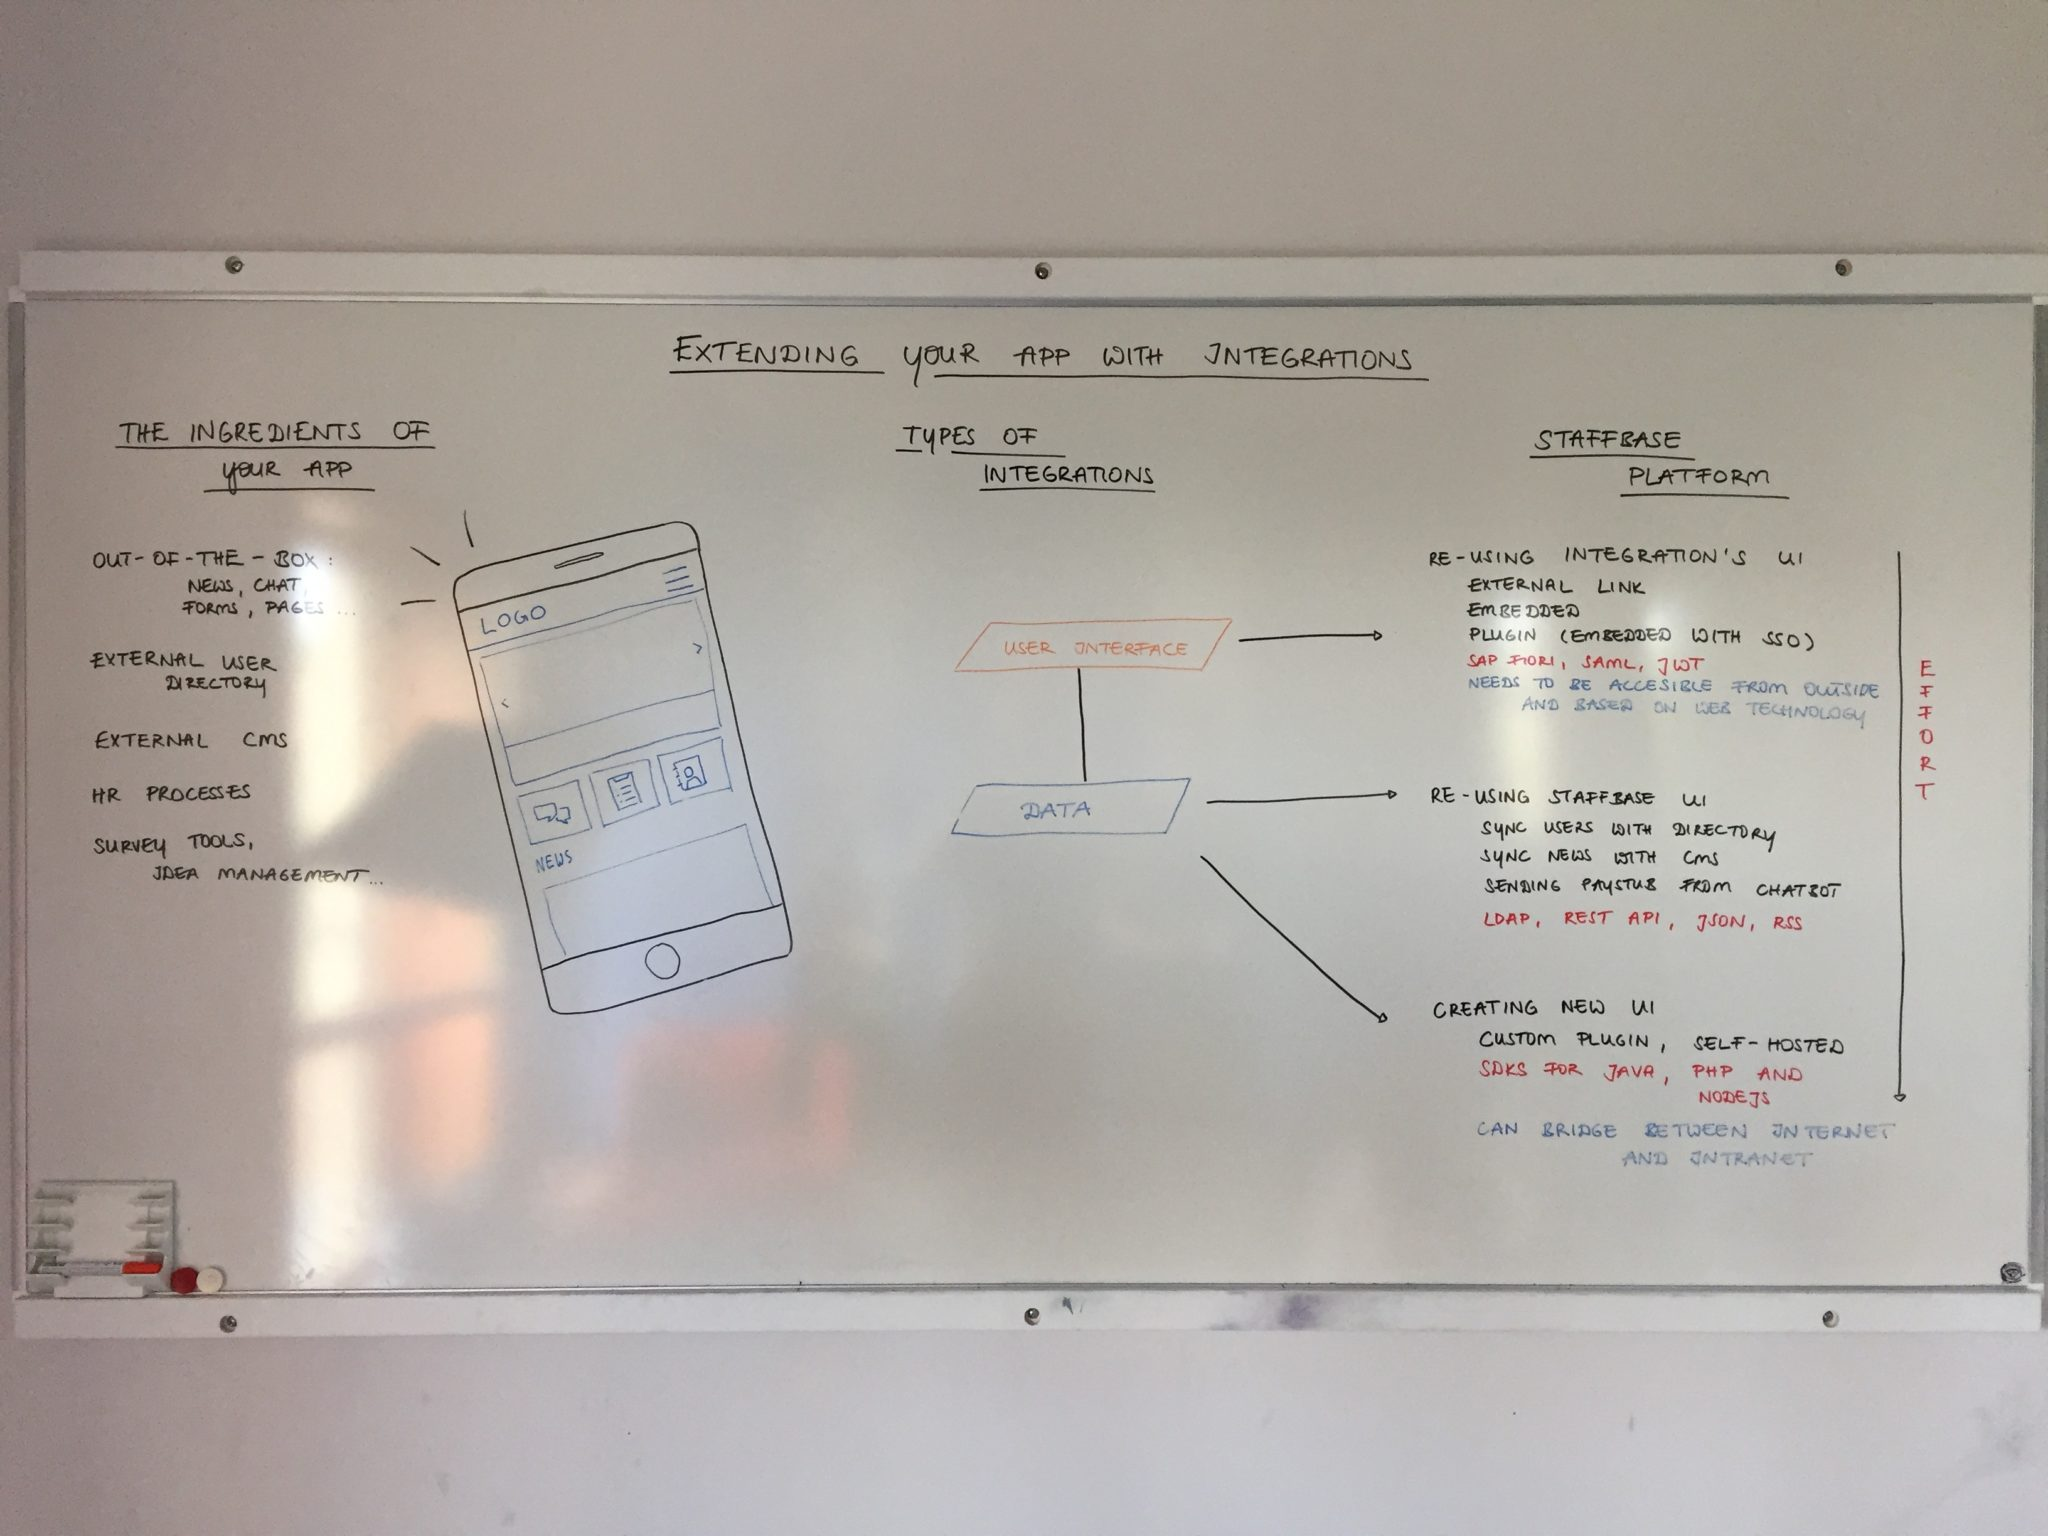 Staffbasics Integrations Whiteboard complete